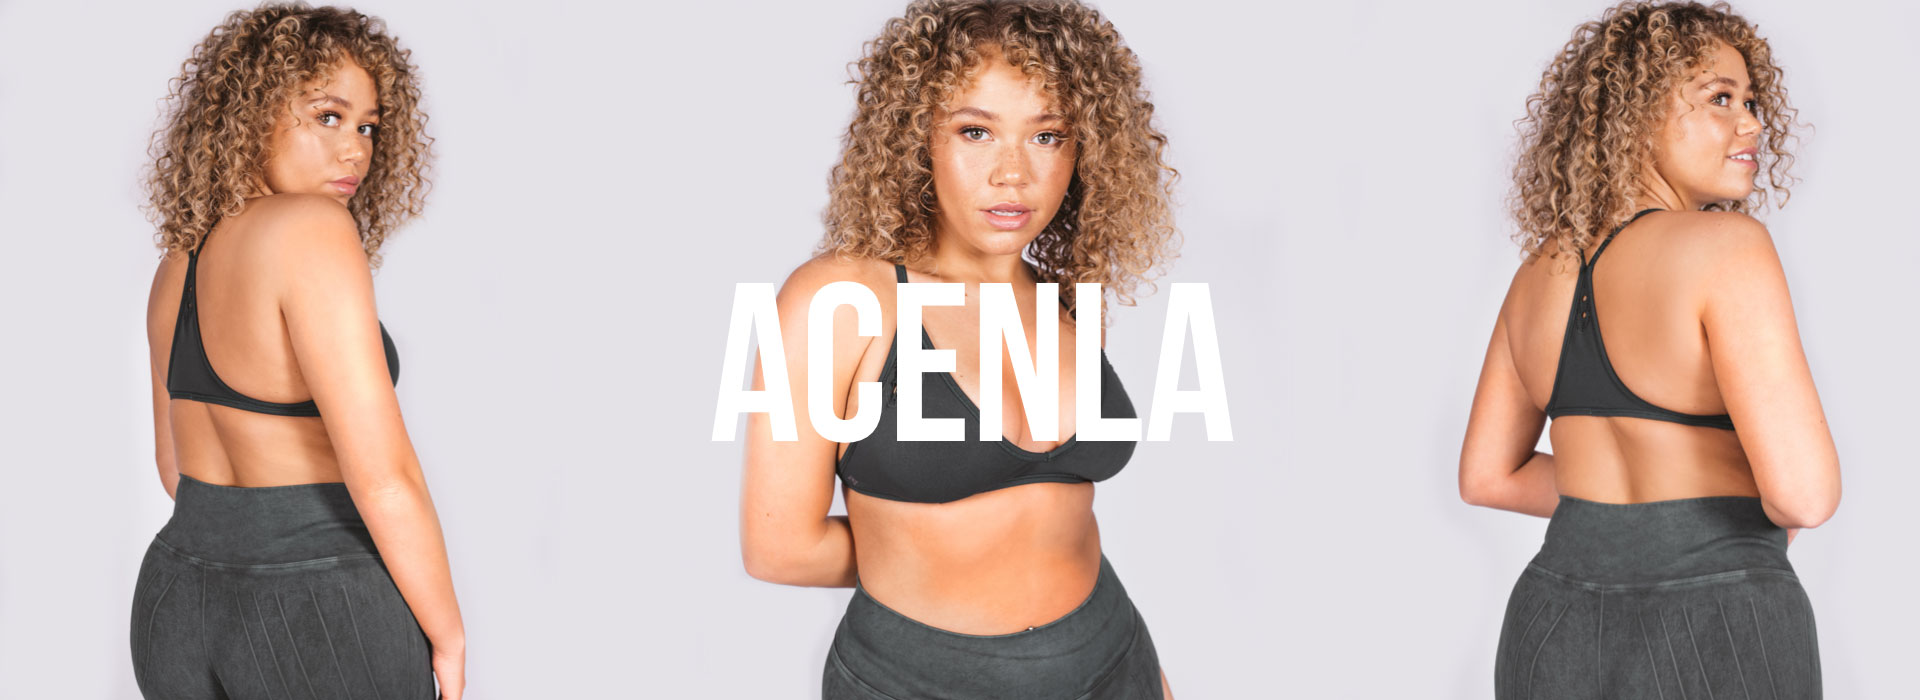 acenla-fashion-gymwear